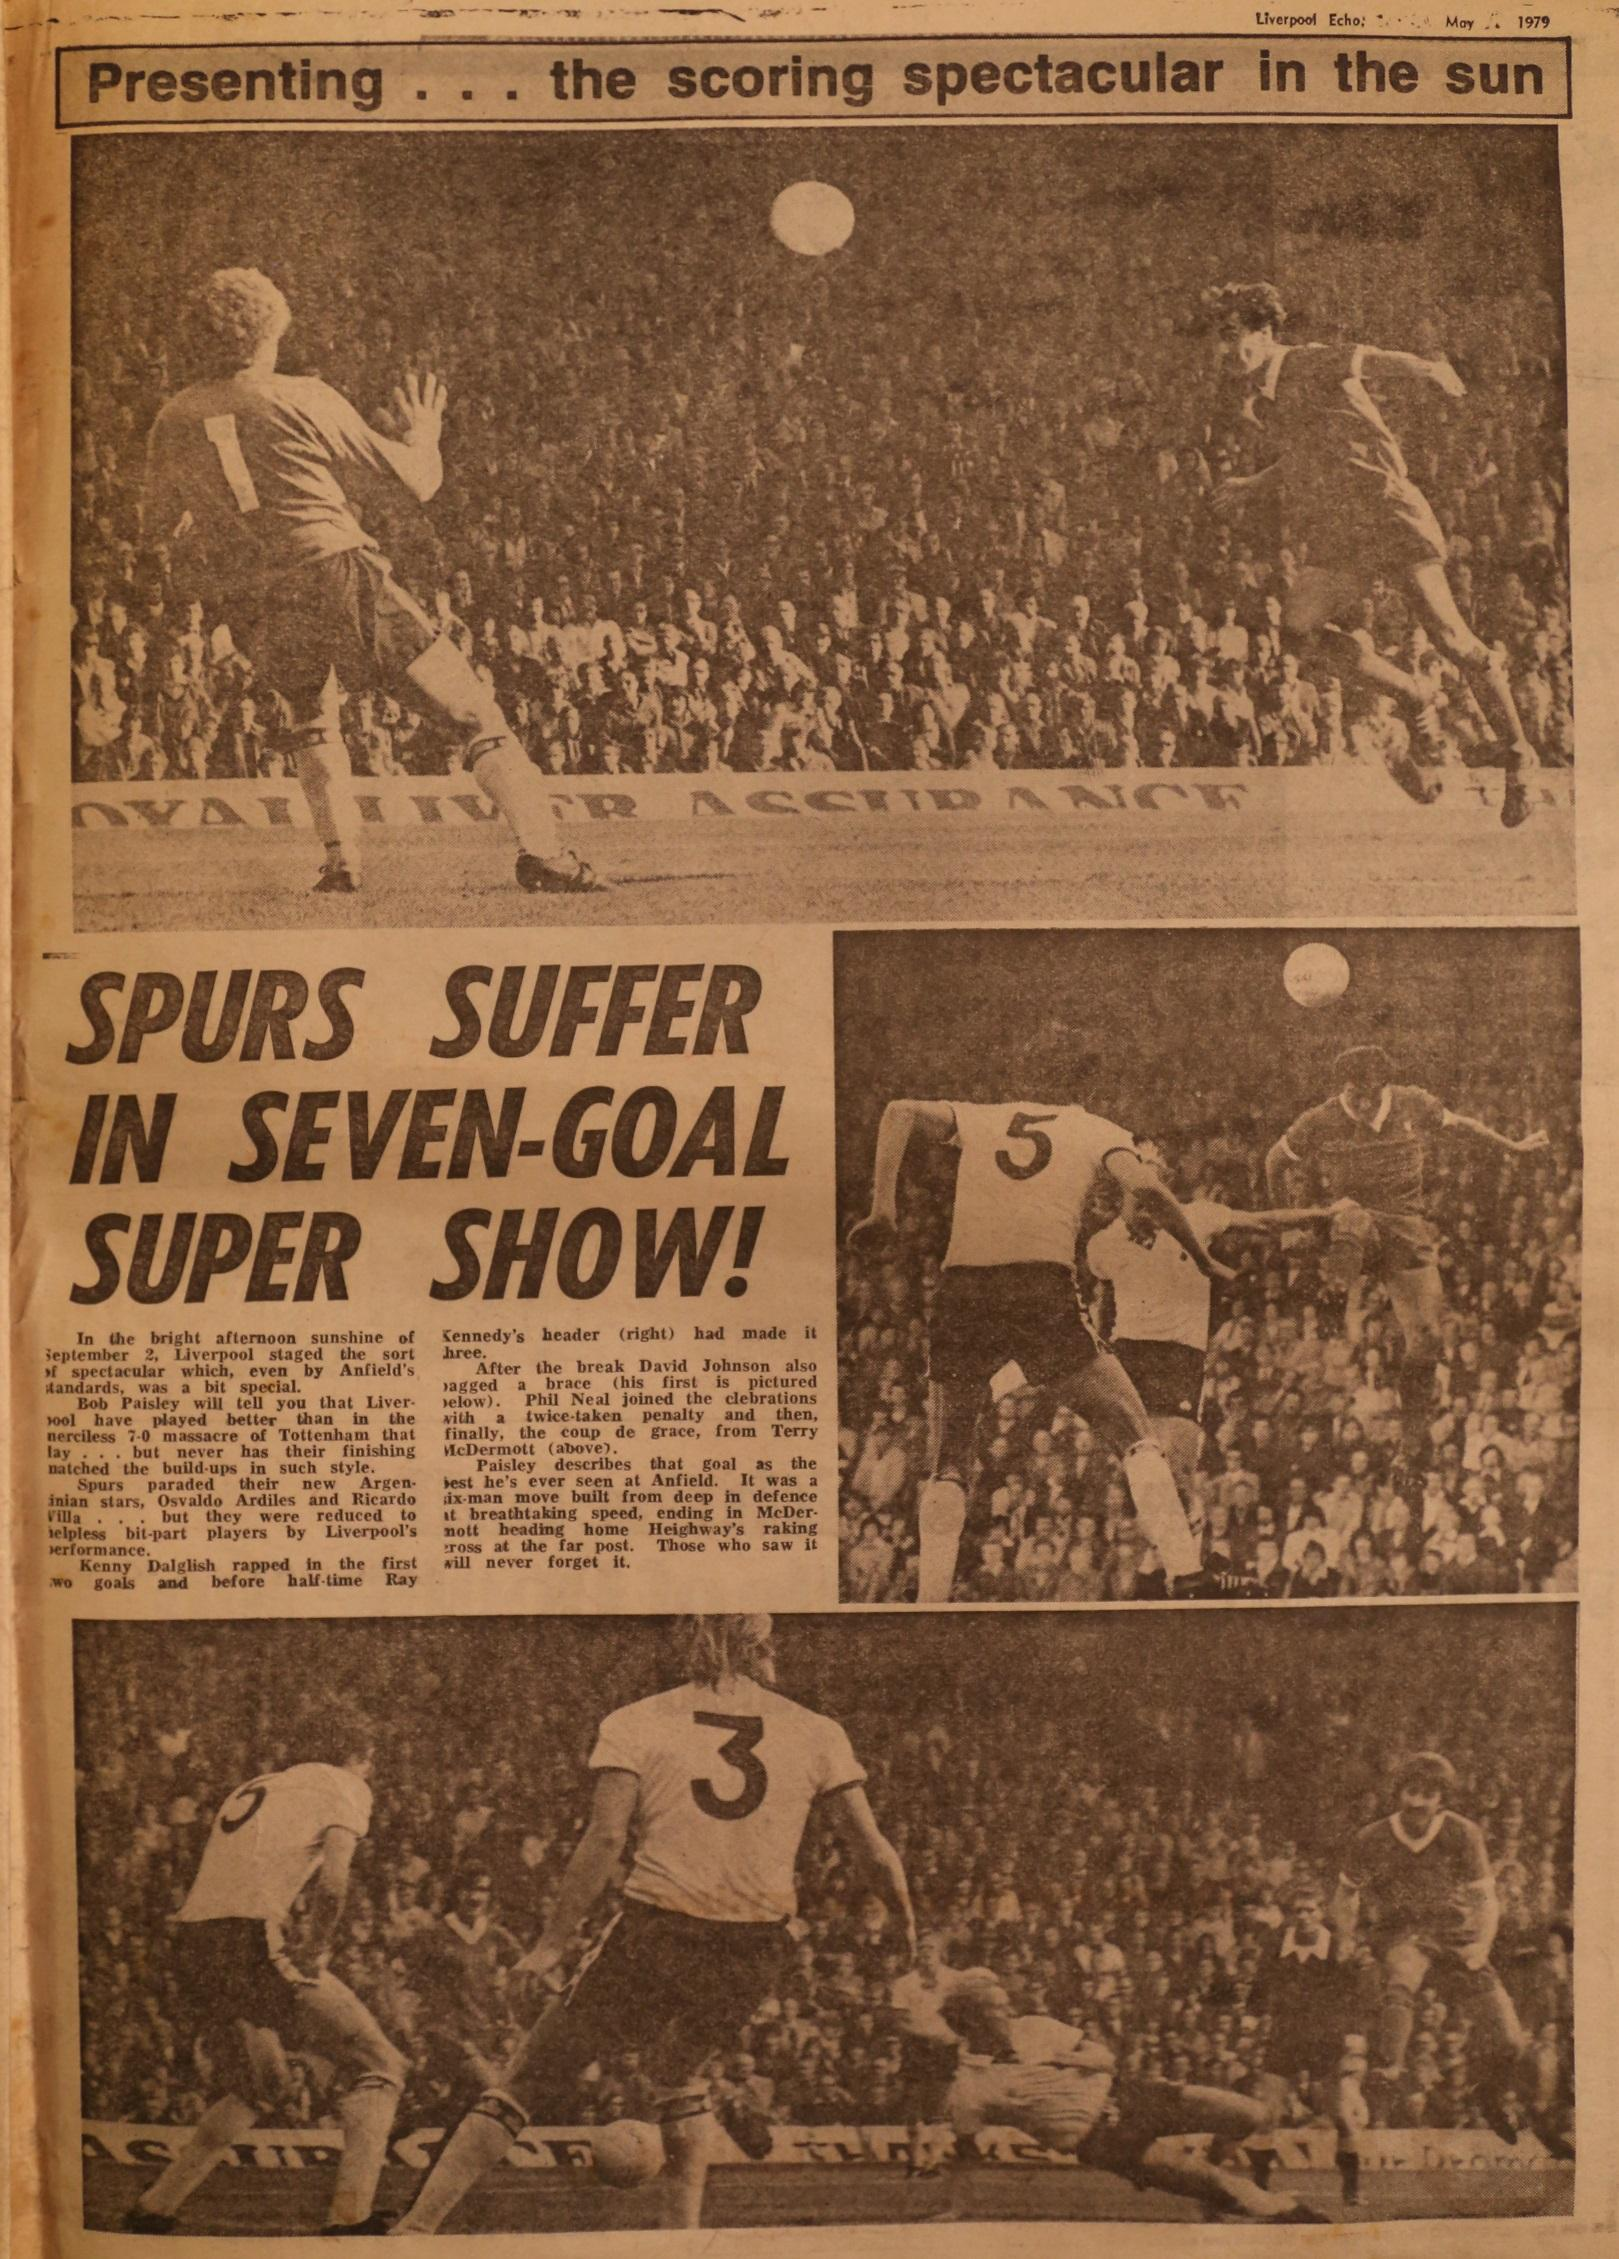 The scoring spectacular in the sun - 2 September 1978